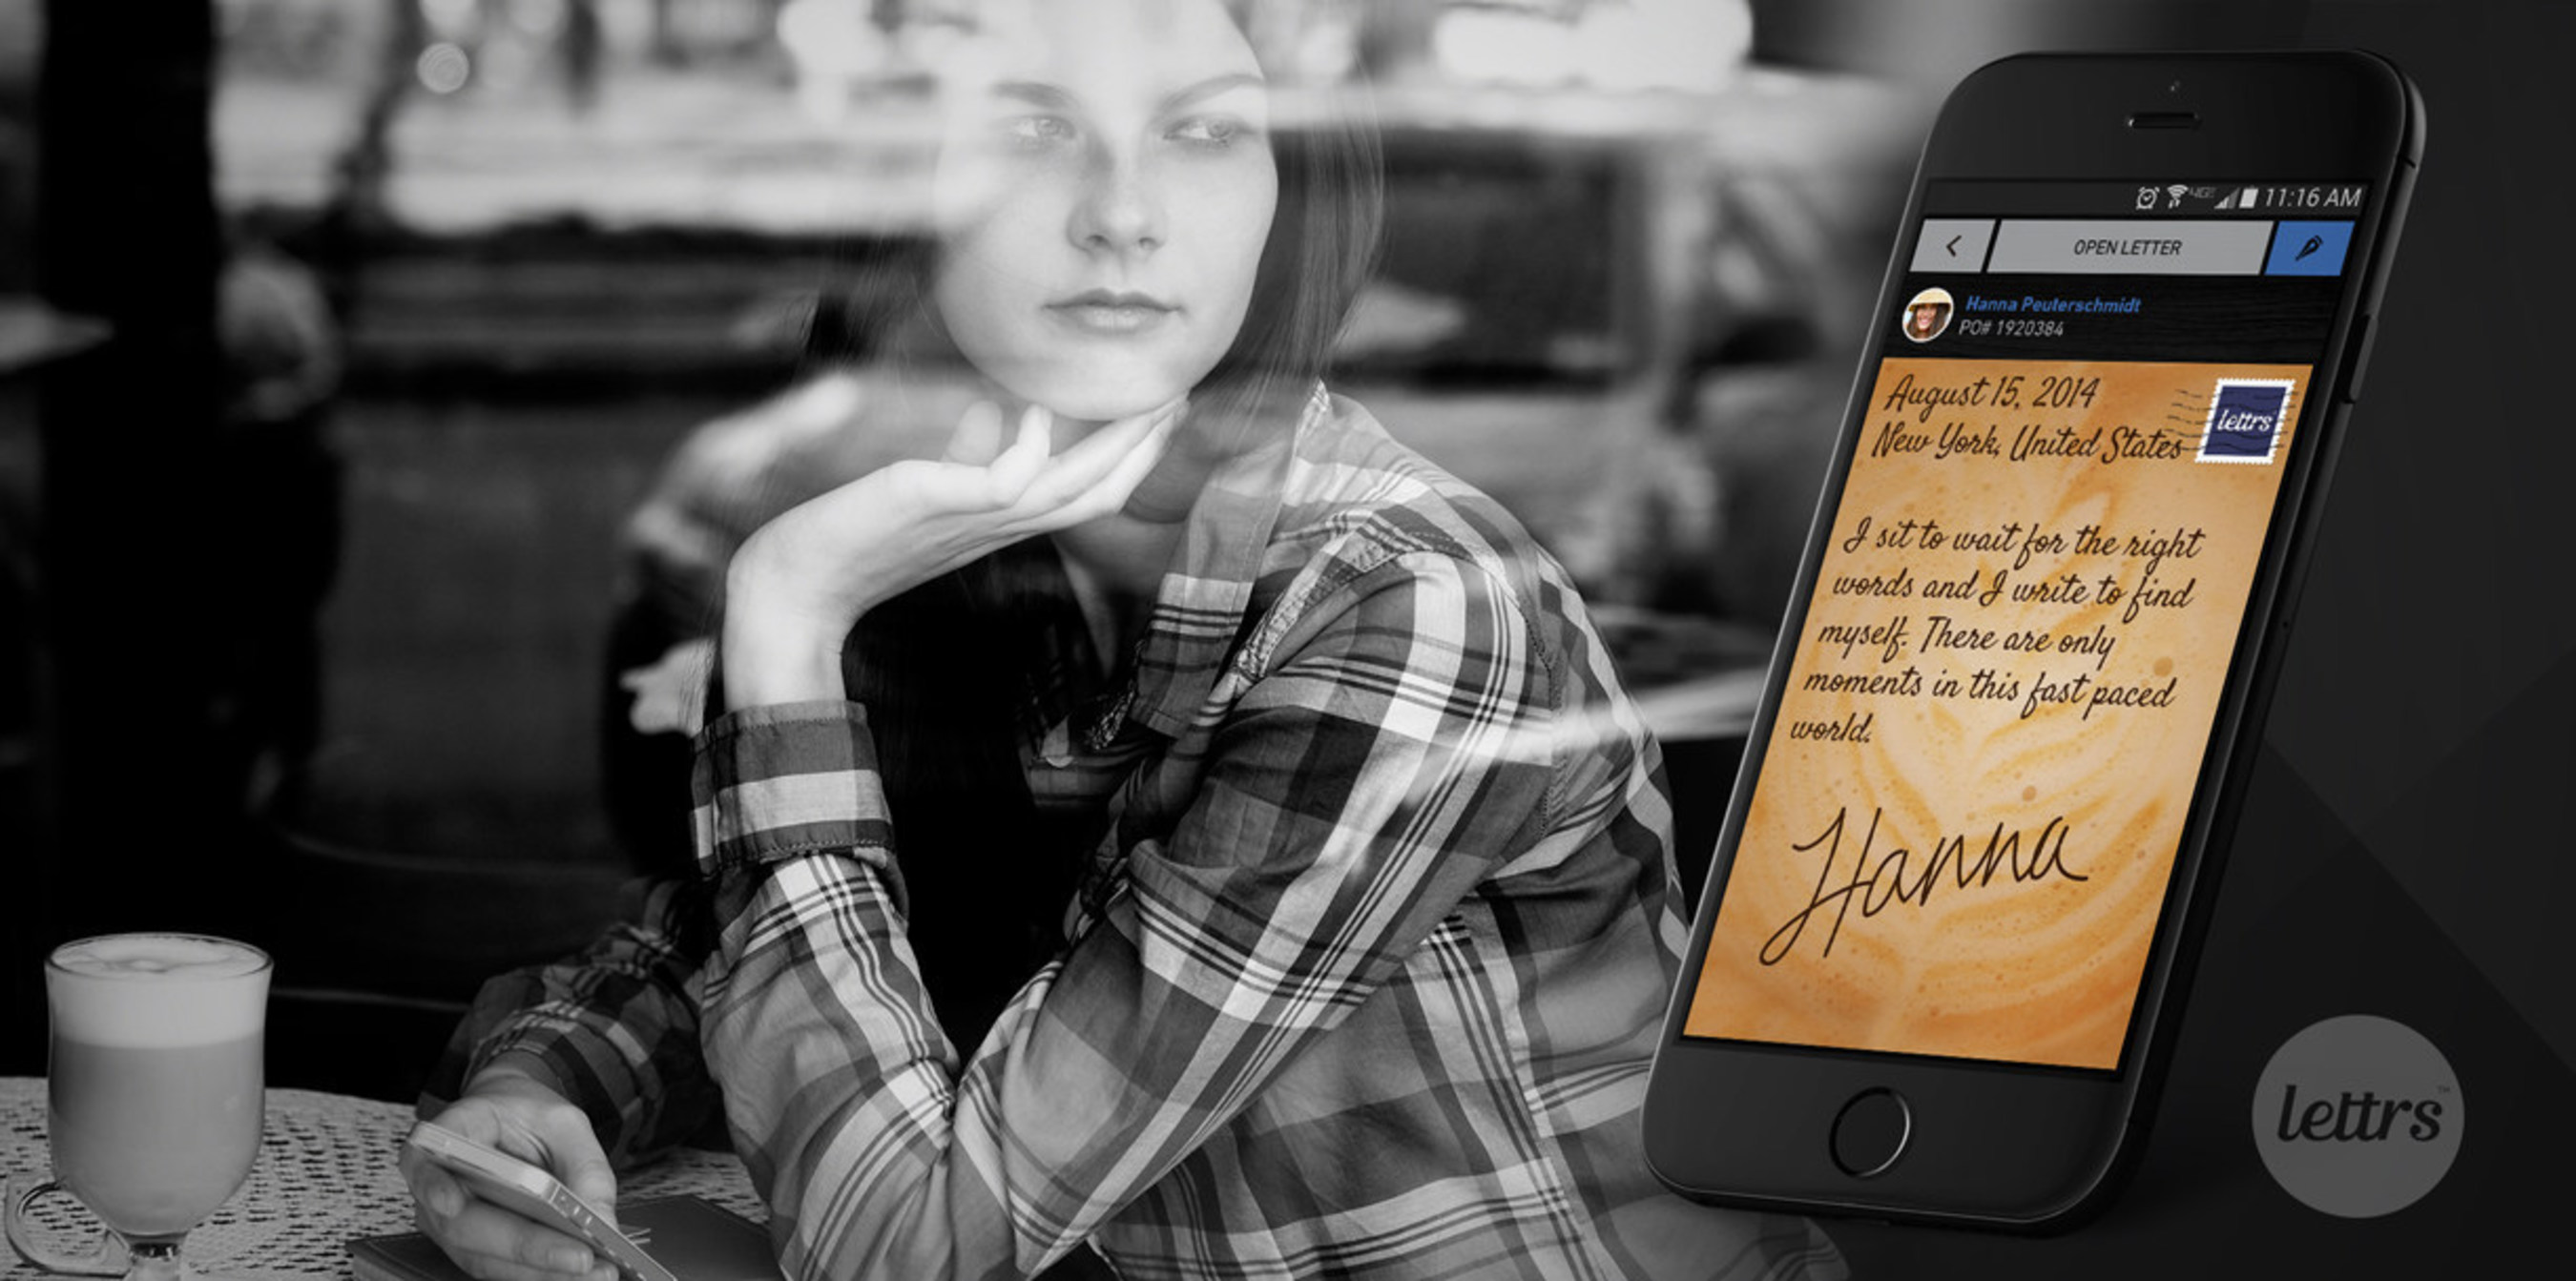 lettrs app Brings Love Letters Mobile with First Mobile Signature, Themes, and PenPals for Lasting words.